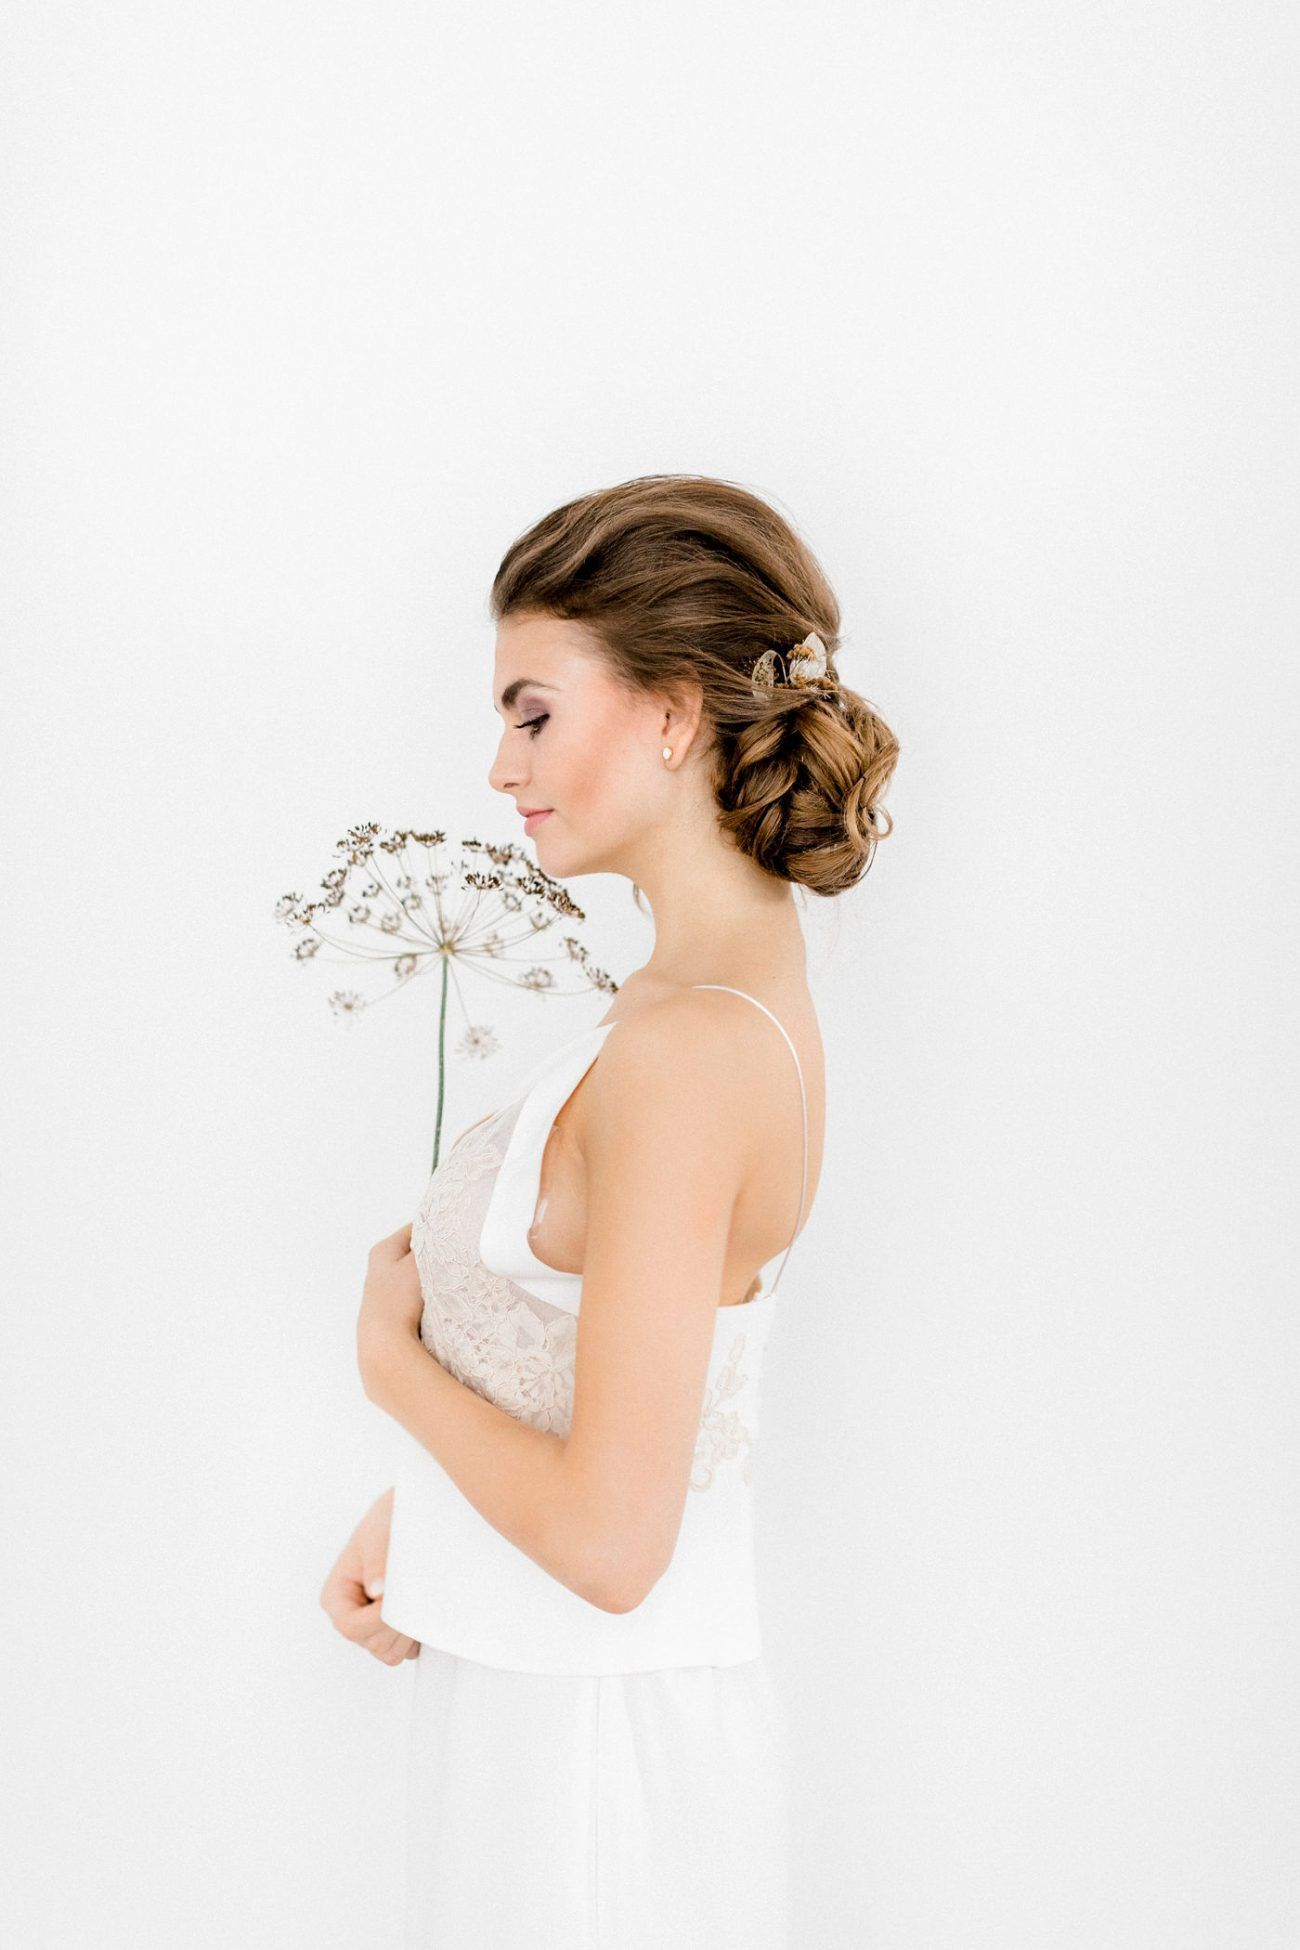 Neutral and Gold Winter Wedding Inspiration Featuring Dried Floral Accents and Minimalist Style